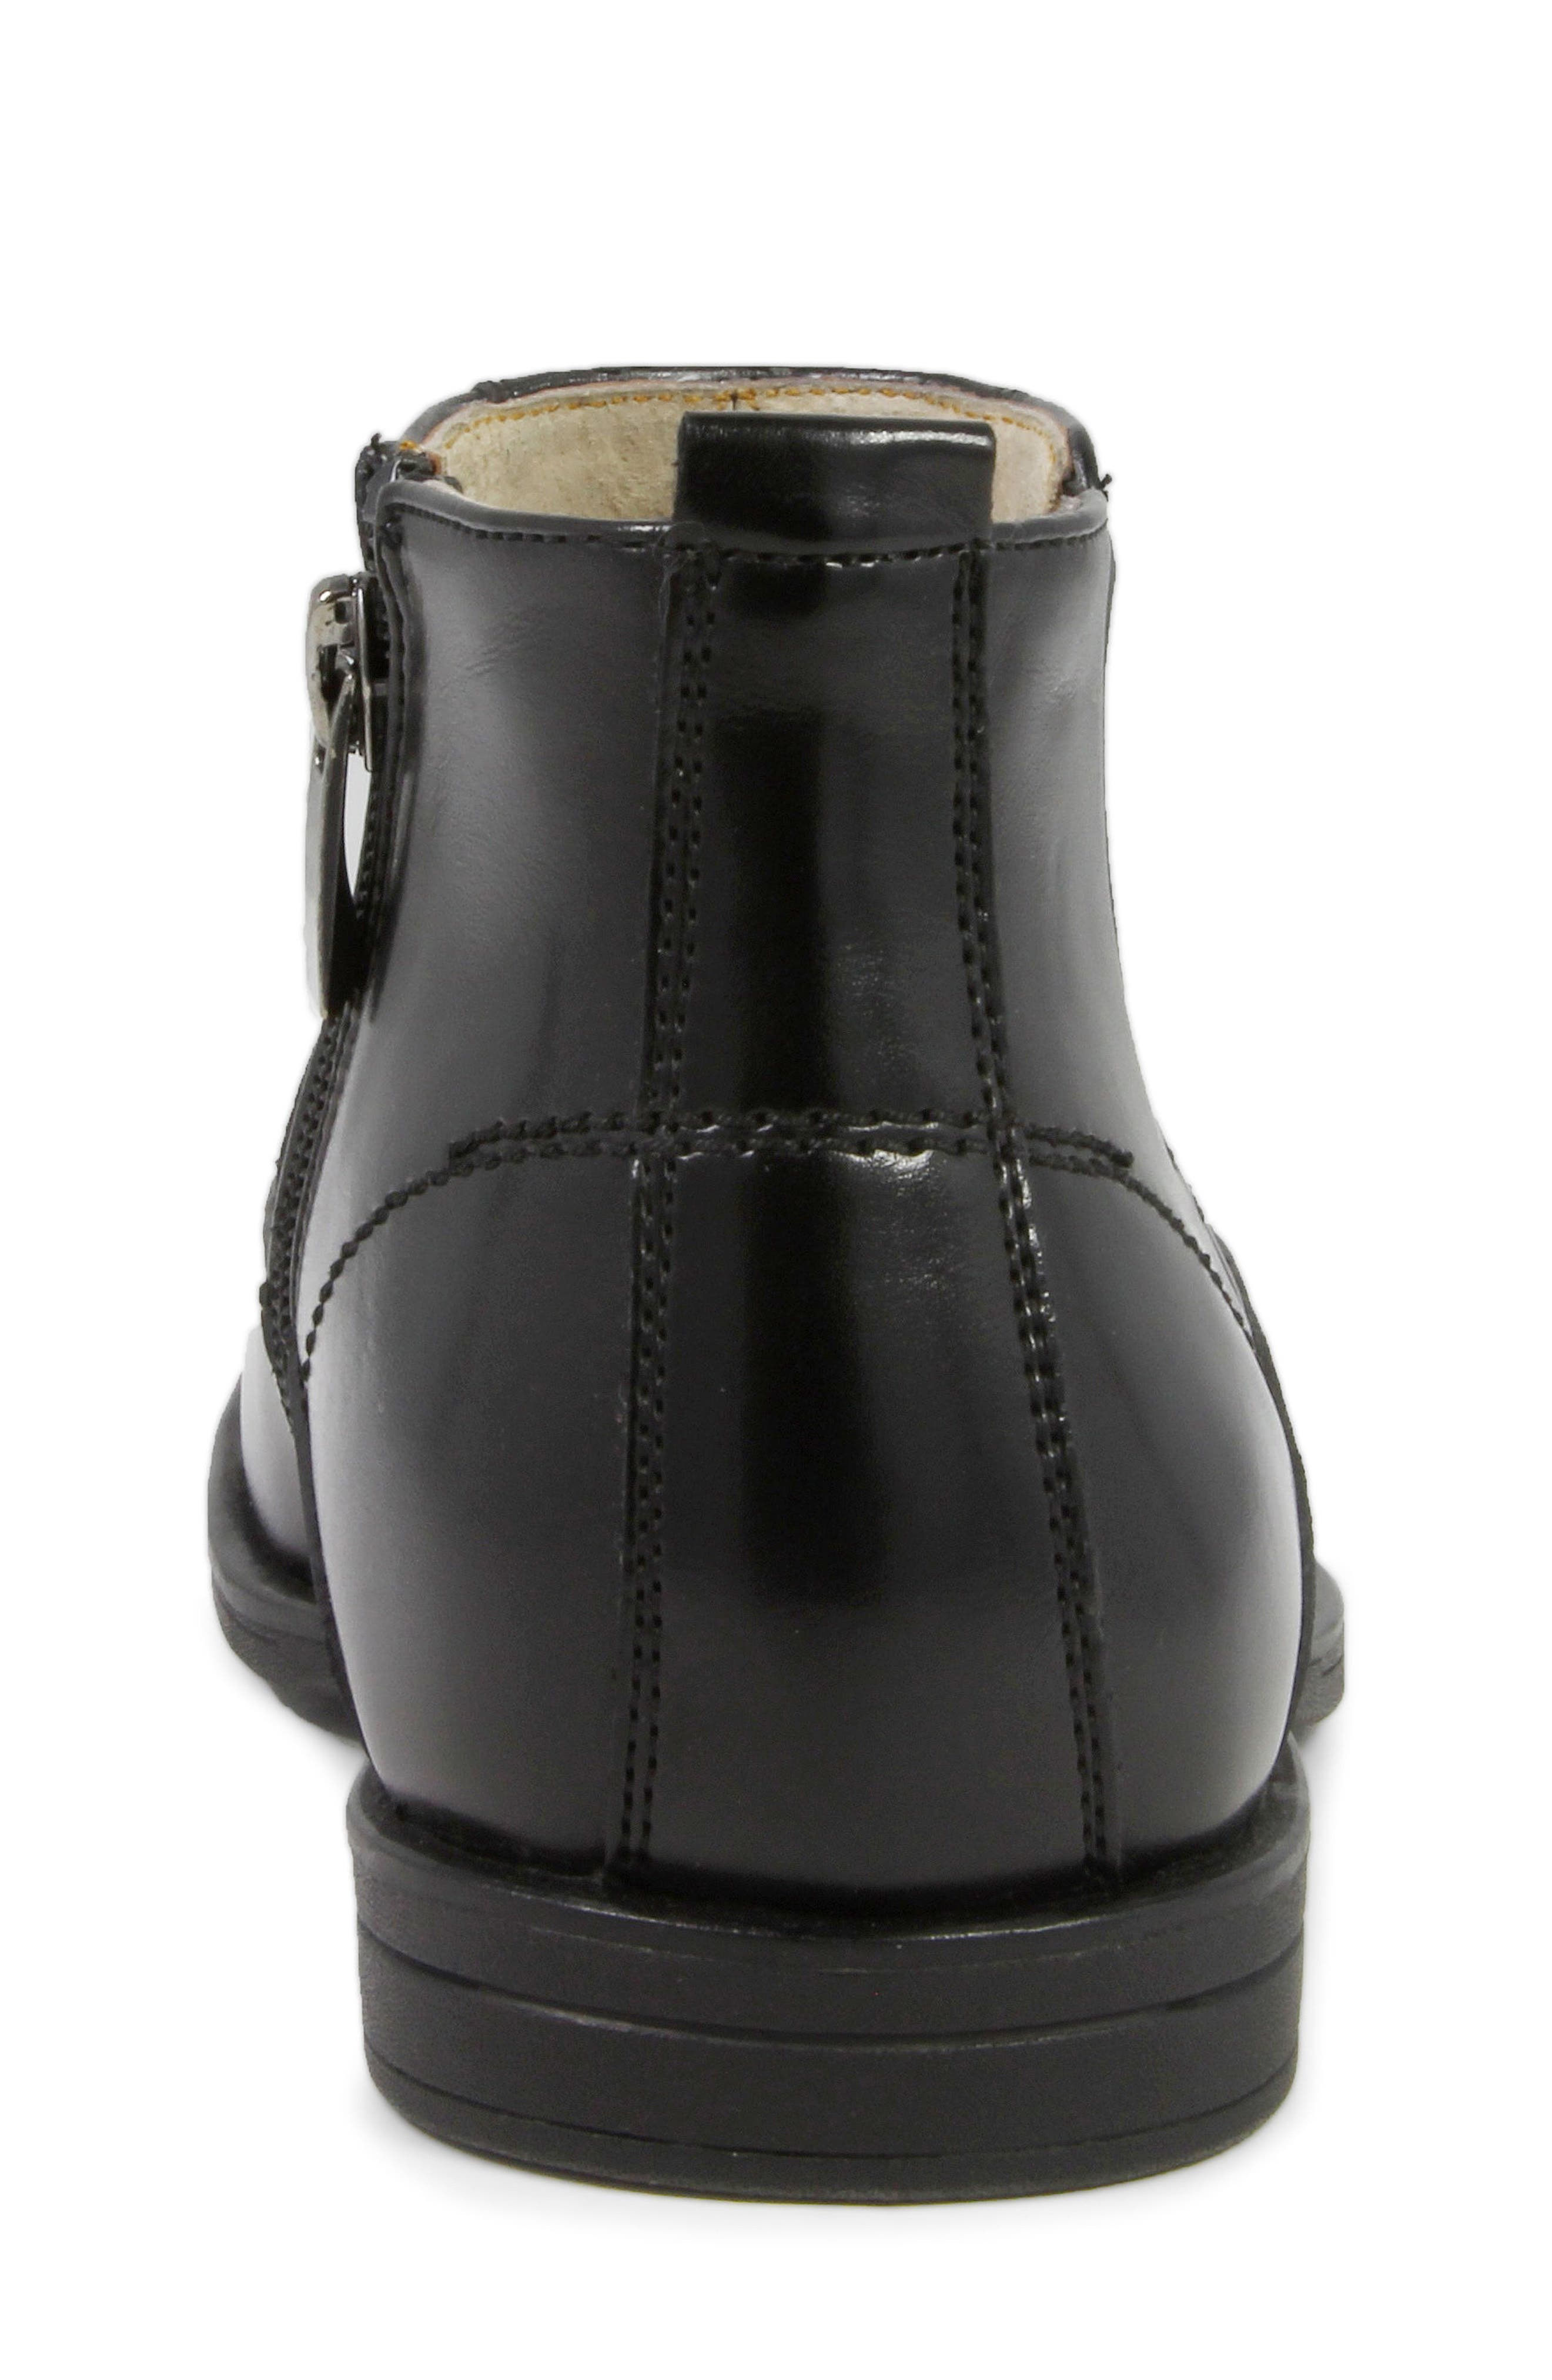 Reveal Chelsea Boot,                             Alternate thumbnail 8, color,                             BLACK